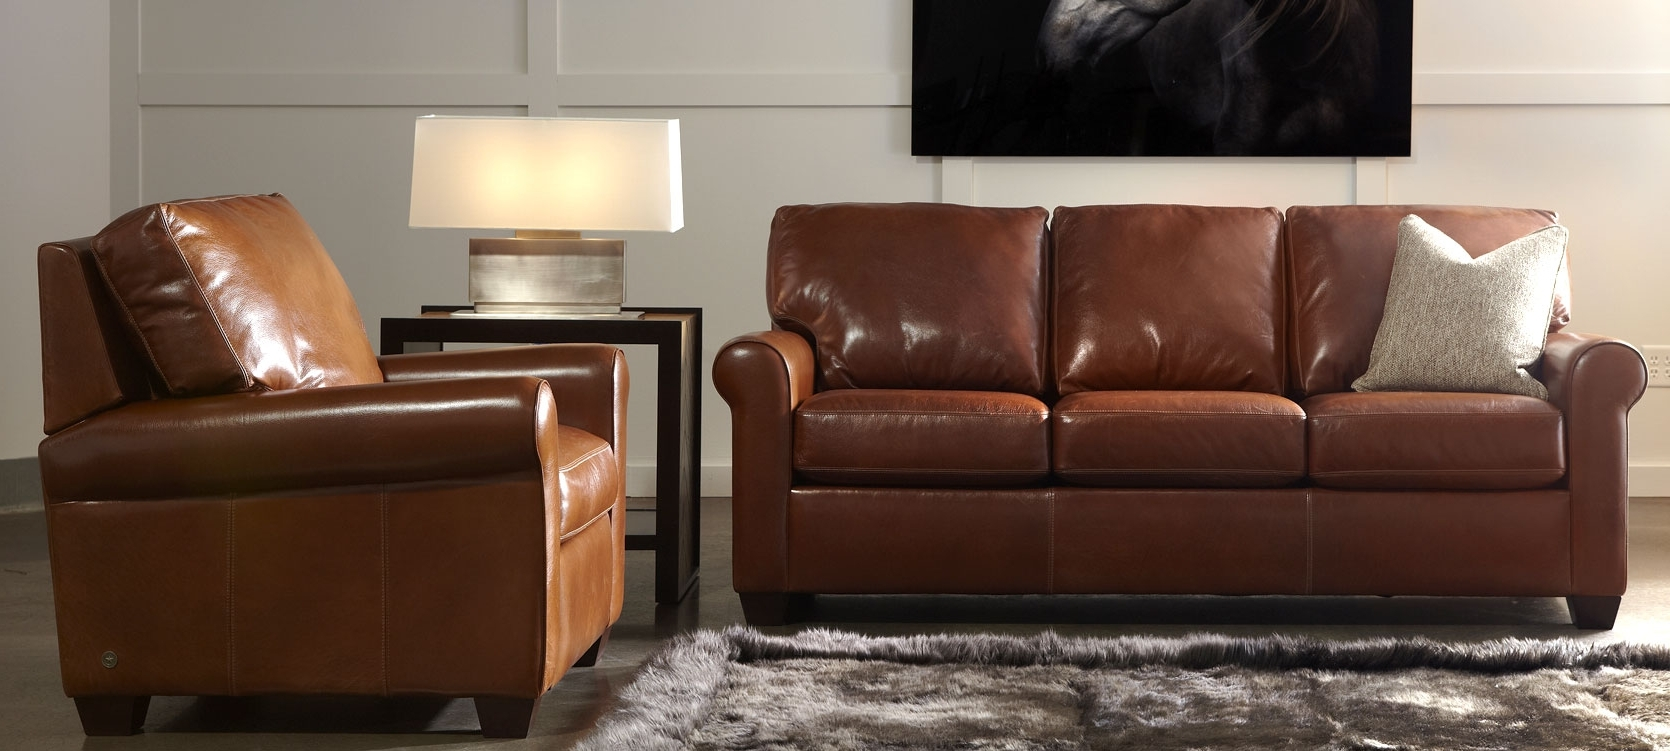 Furniture Store In Eugene, Oregon – Riley's Real Wood Furniture Throughout 2018 Eugene Oregon Sectional Sofas (View 3 of 15)